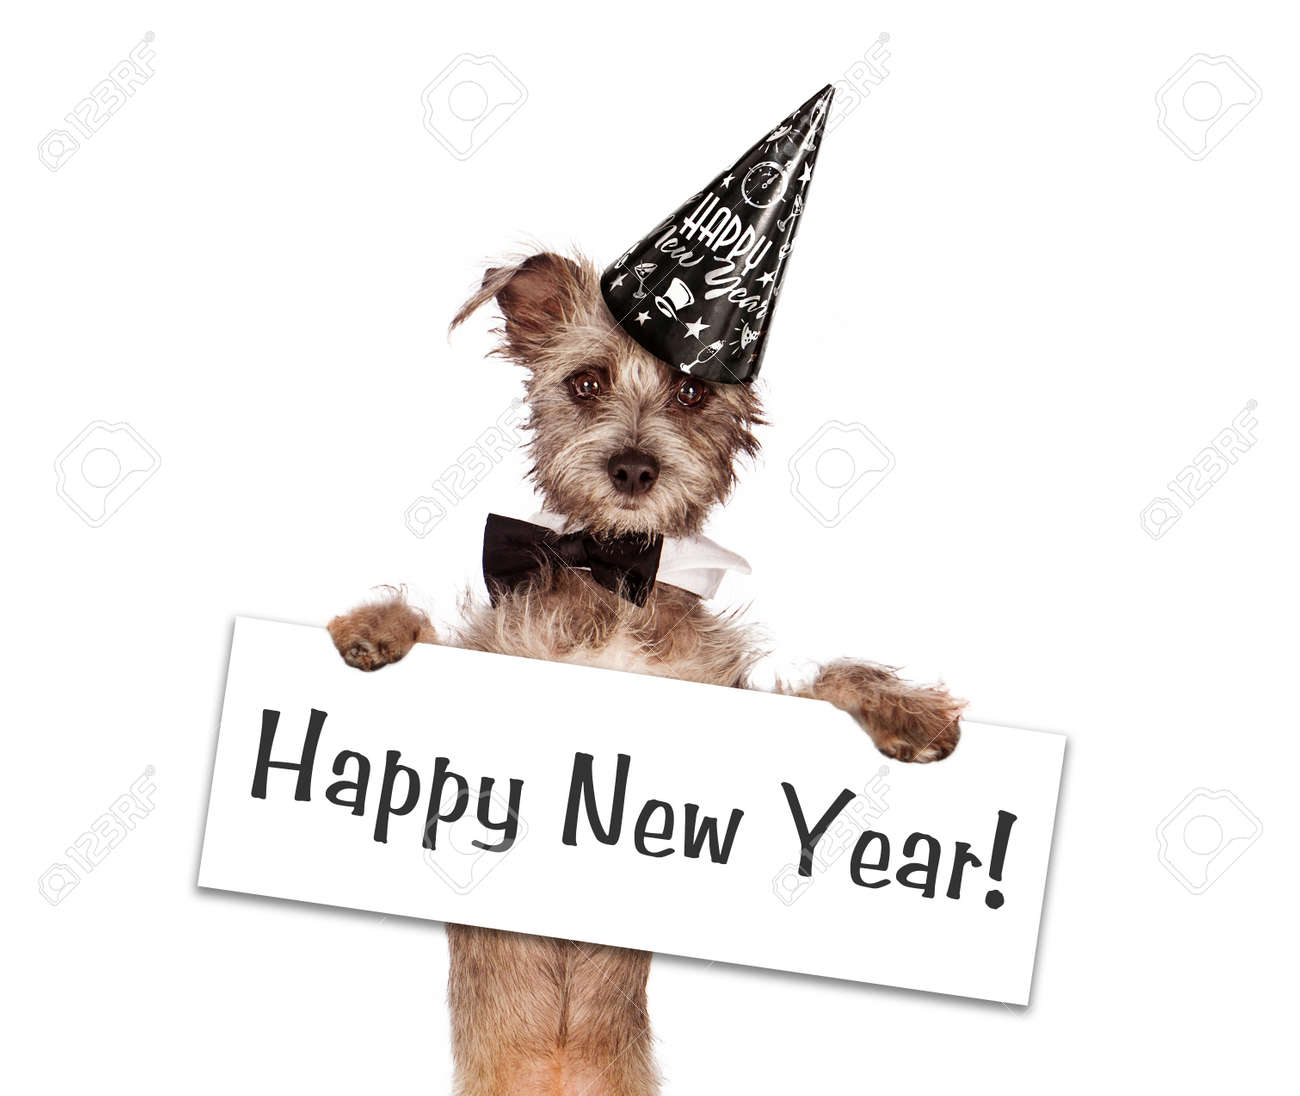 happy new year sign a cute young terrier mixed breed puppy dog against a white backdrop wearing a party hat